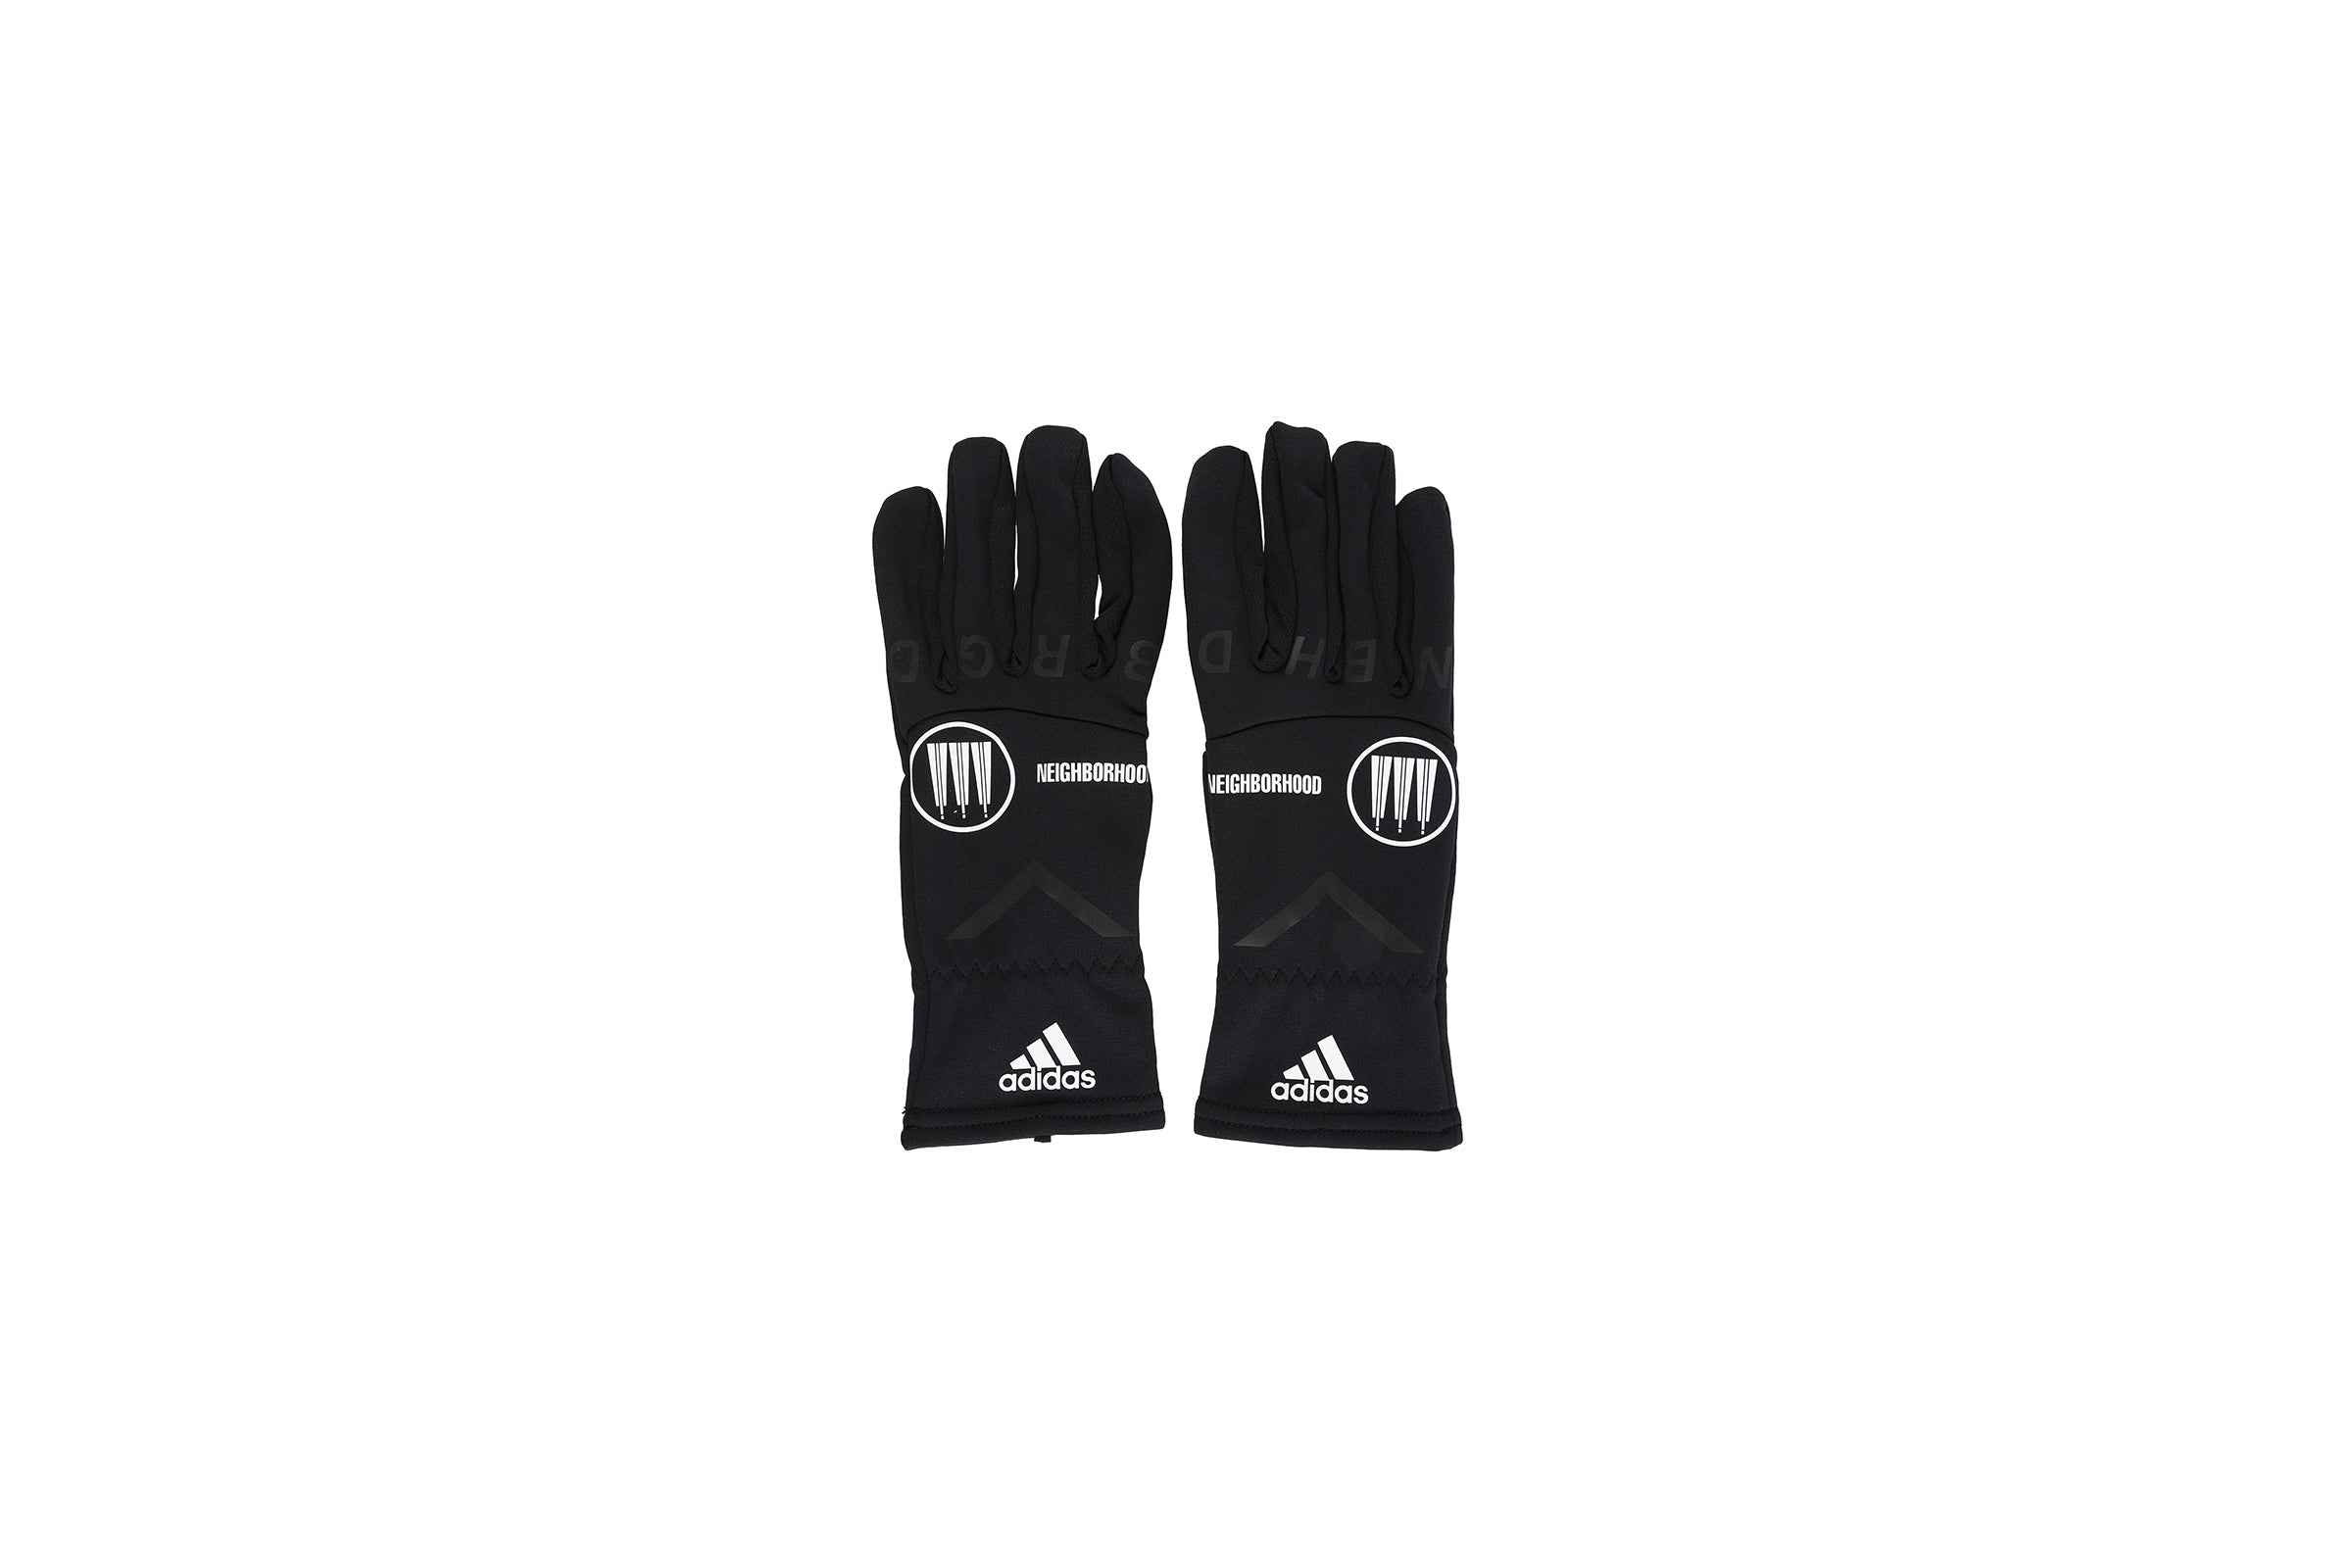 Adidas Glove x Neighborhood